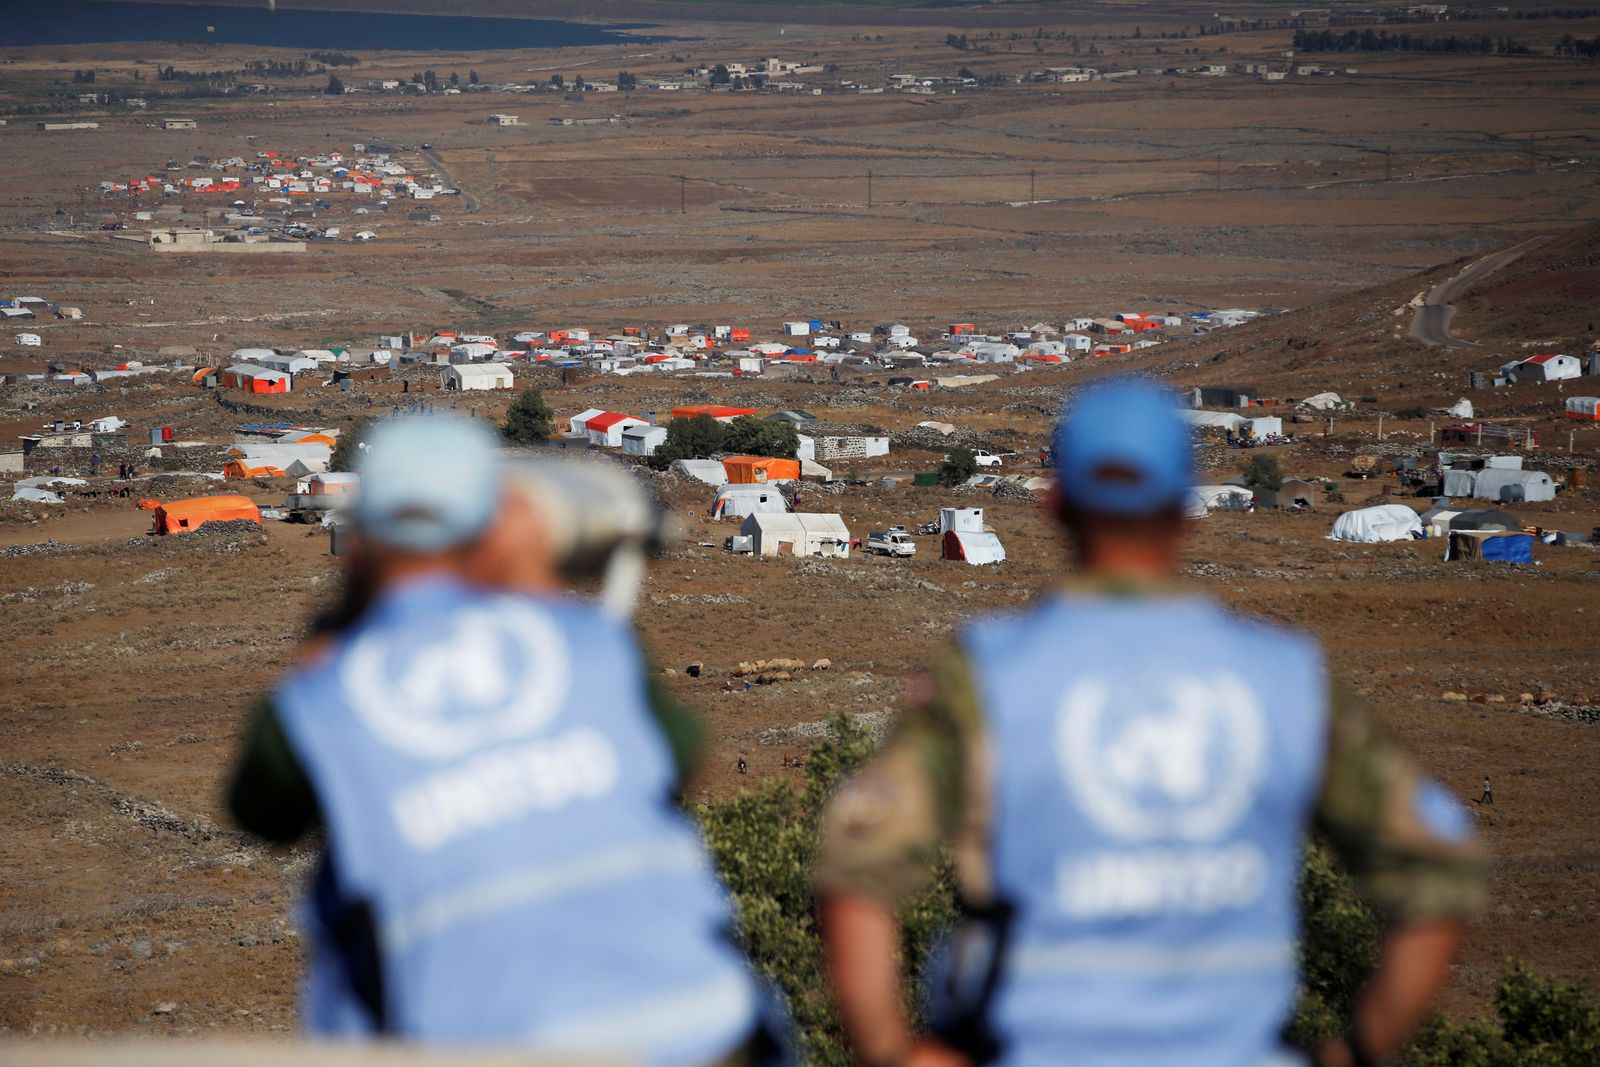 Peacekeeping troops from the unarmed United Nations Truce Supervision Organisation (UNTSO) look over the border line between Israel and Syria at a refugee tents erected at its Syrian side and seen from the Israeli-occupied Golan Heights